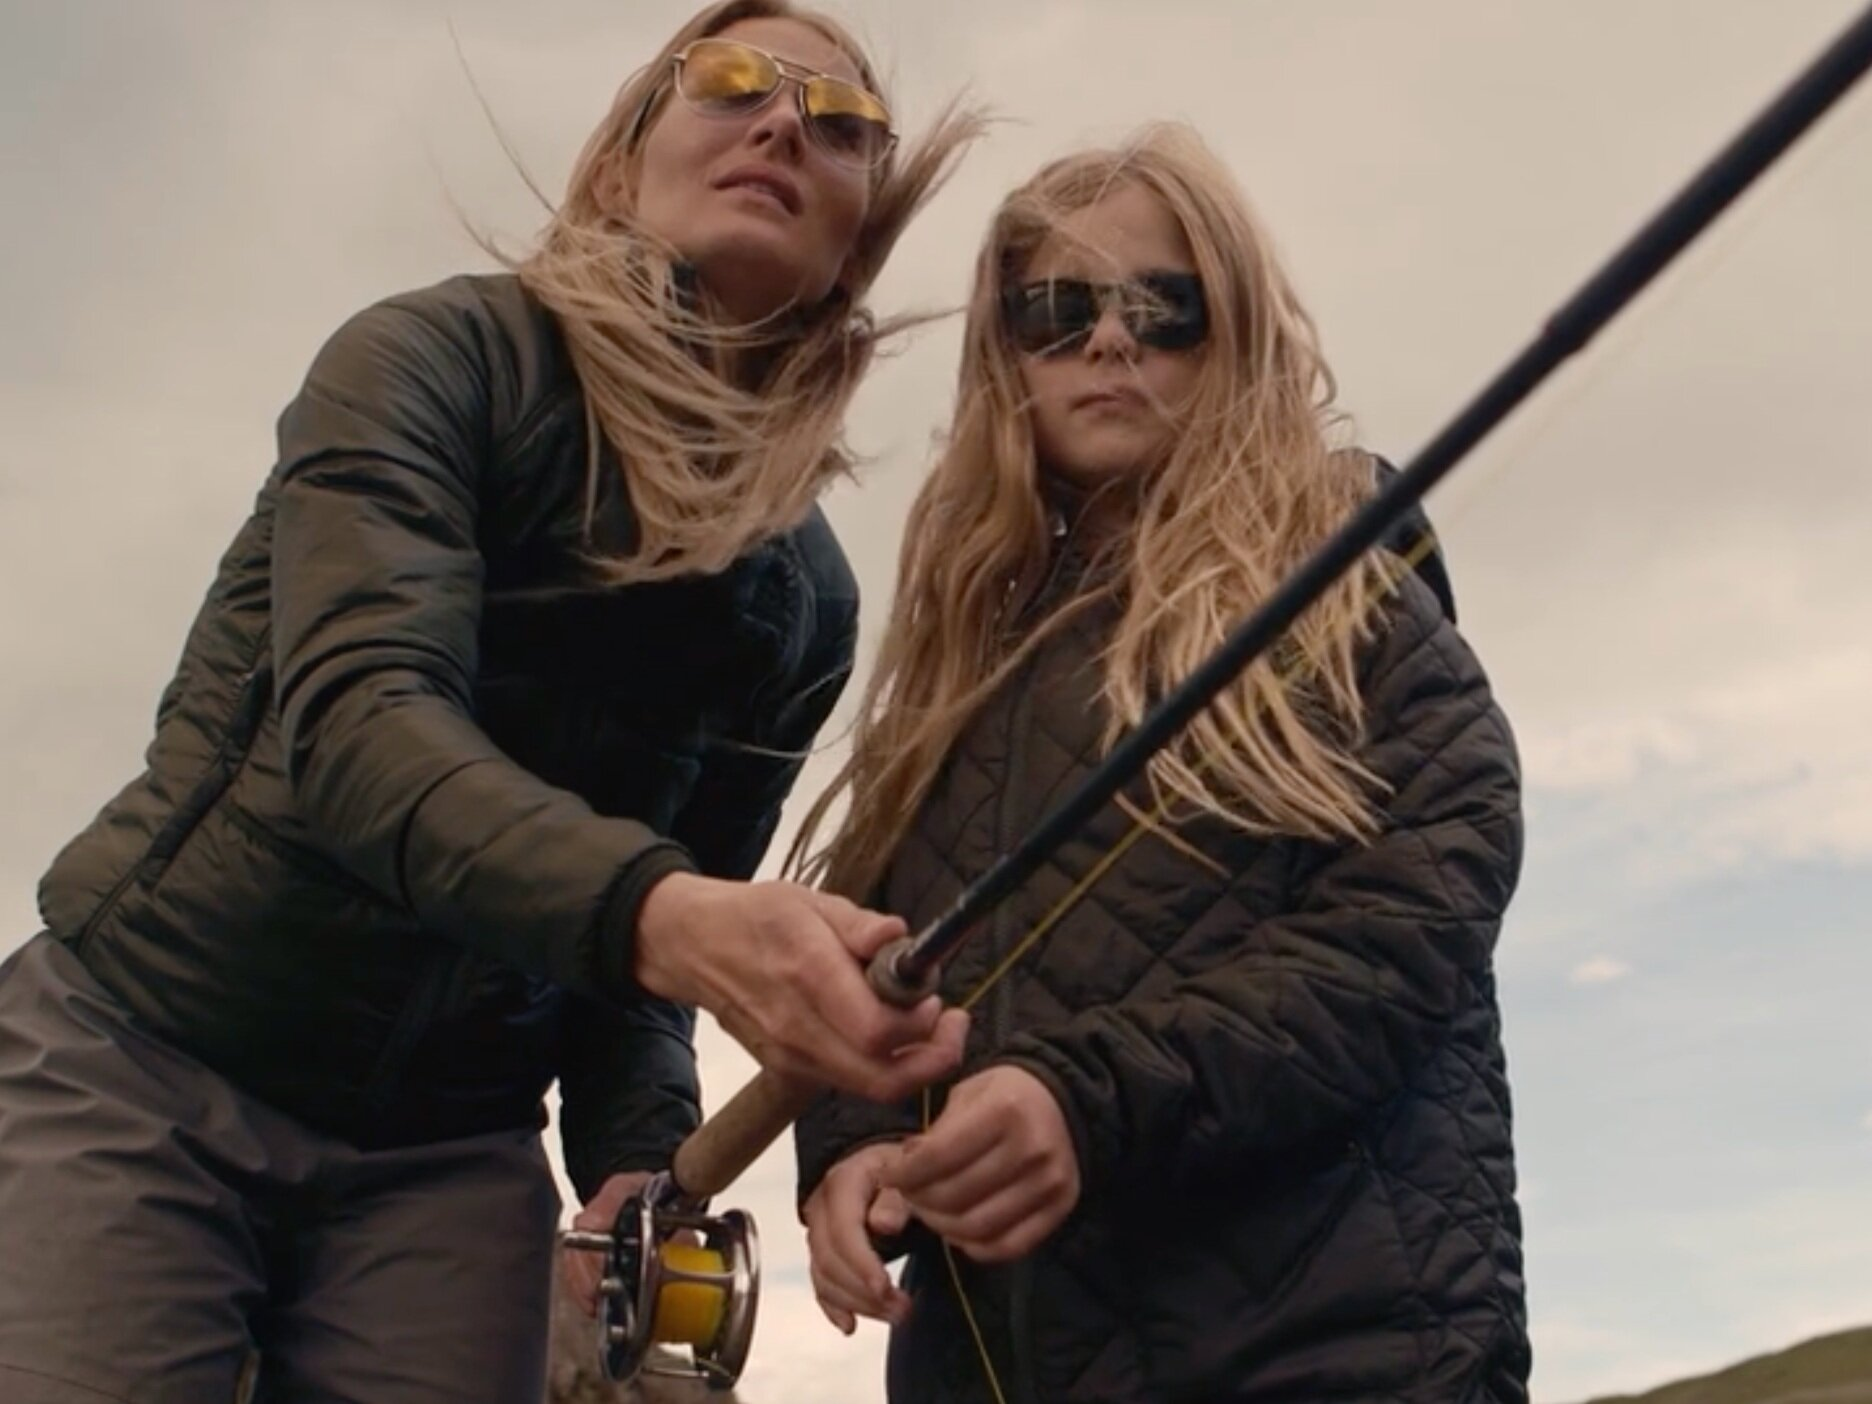 My Mom Vala - Rivers run through Vala Árnadóttir's blood and she's teaching her daughter Mathilda everything she knows. This short film paints the fantastical and mysterious country of Greenland through Mathilda's fantasies and Vala's eyes.Run time: 9 minutes 45 secondsDirector: RC Cone